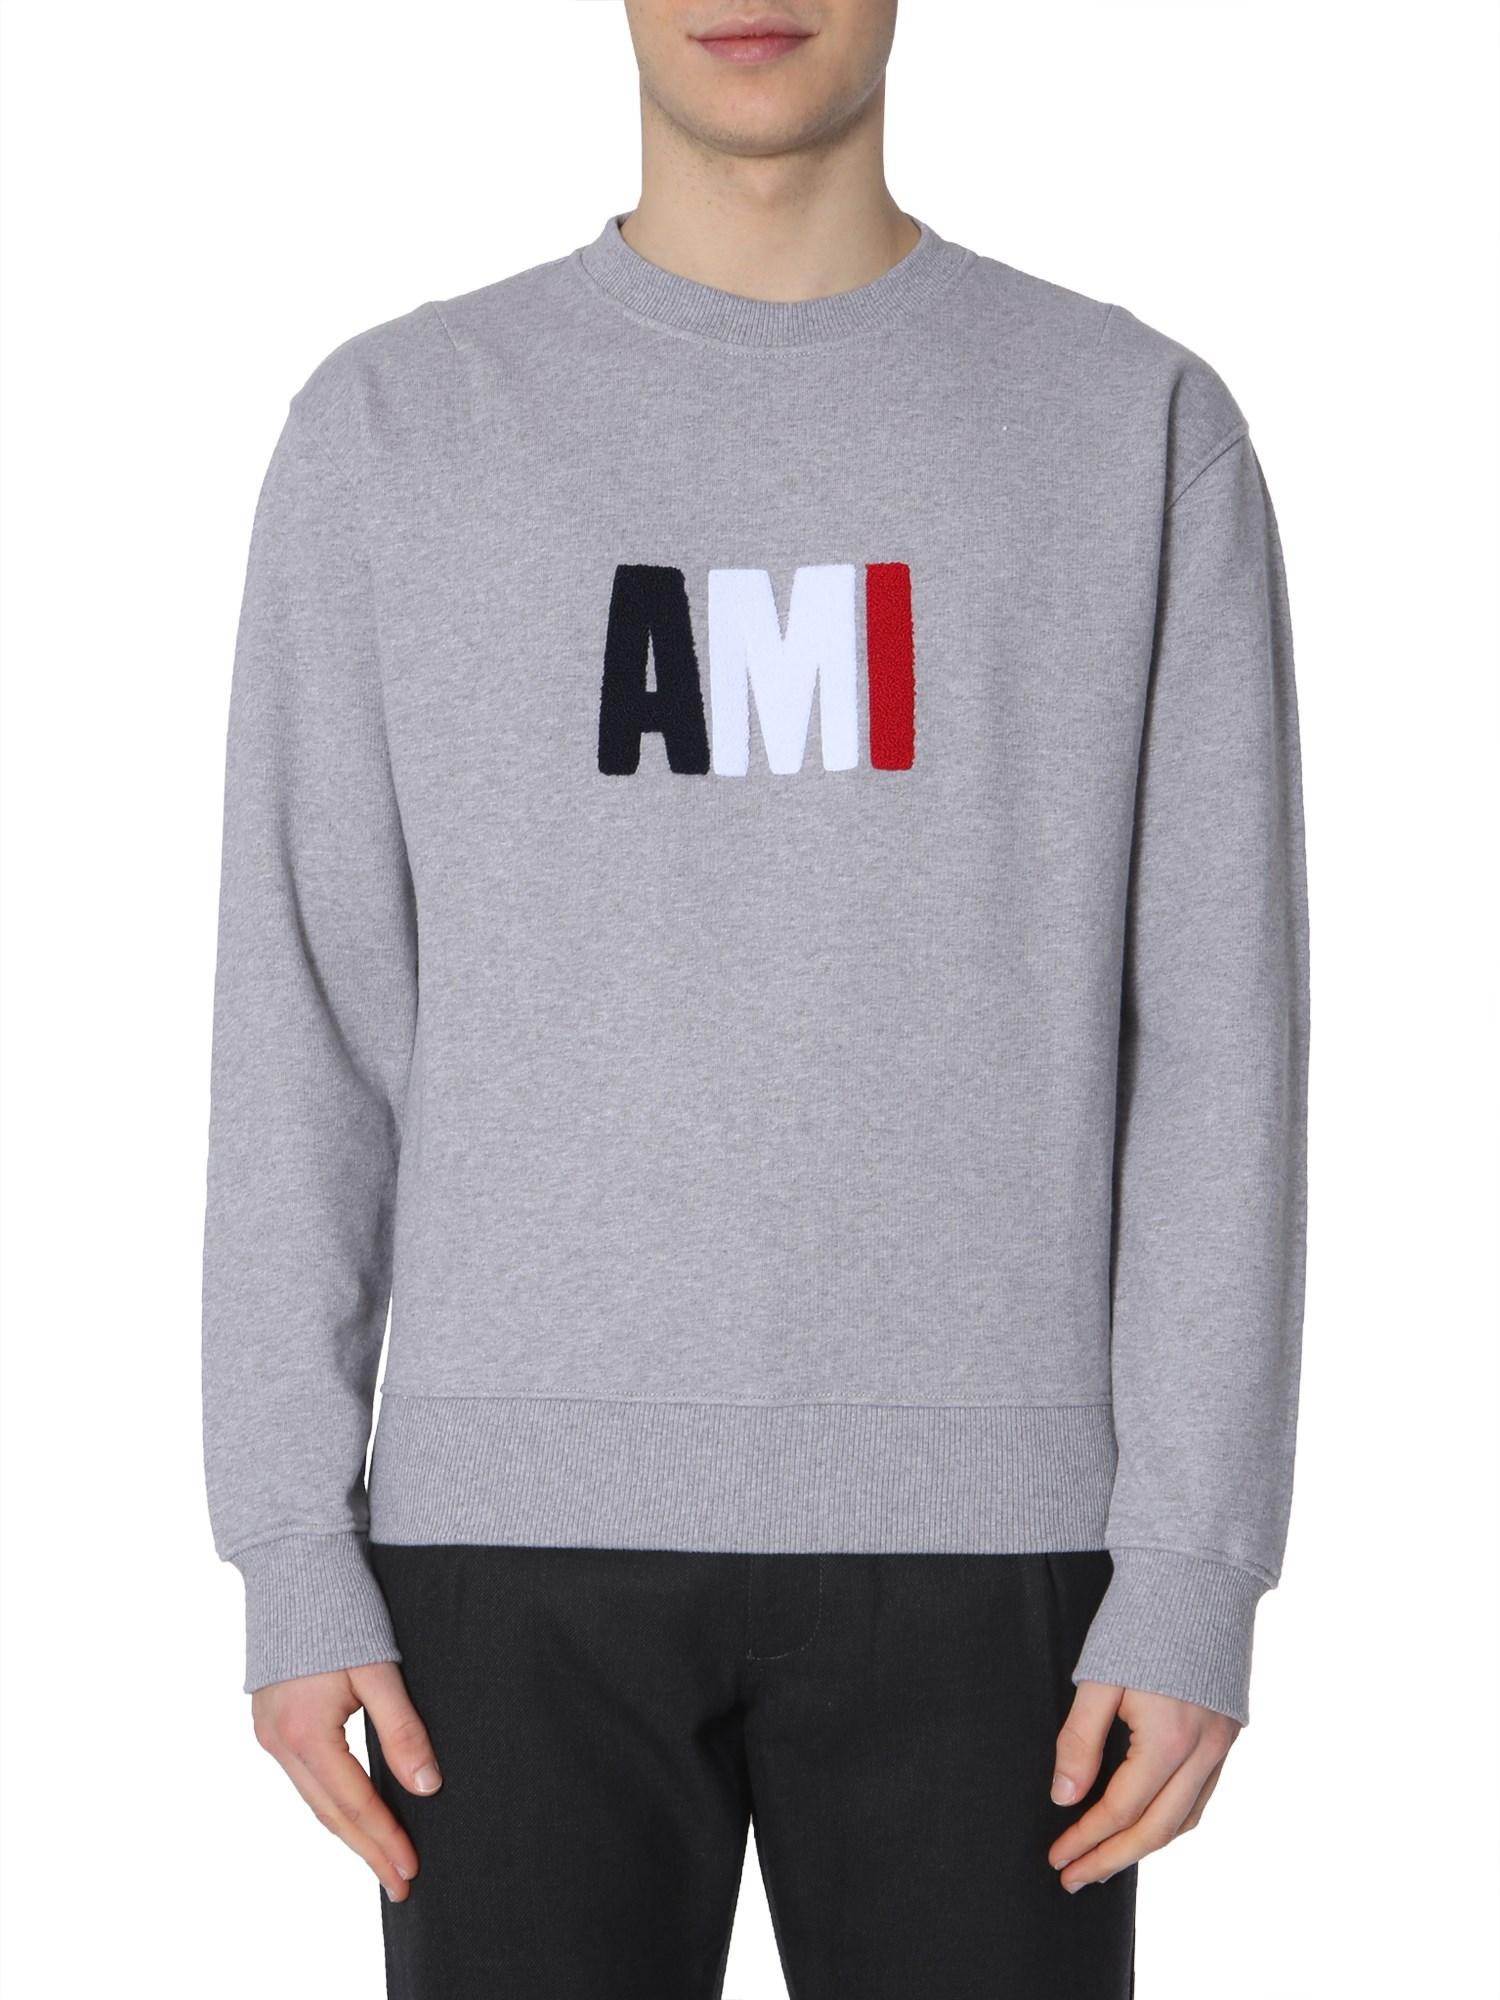 4c9def21 Lyst - AMI Cotton Sweatshirt With Embroidered Sponge Logo in Gray for Men